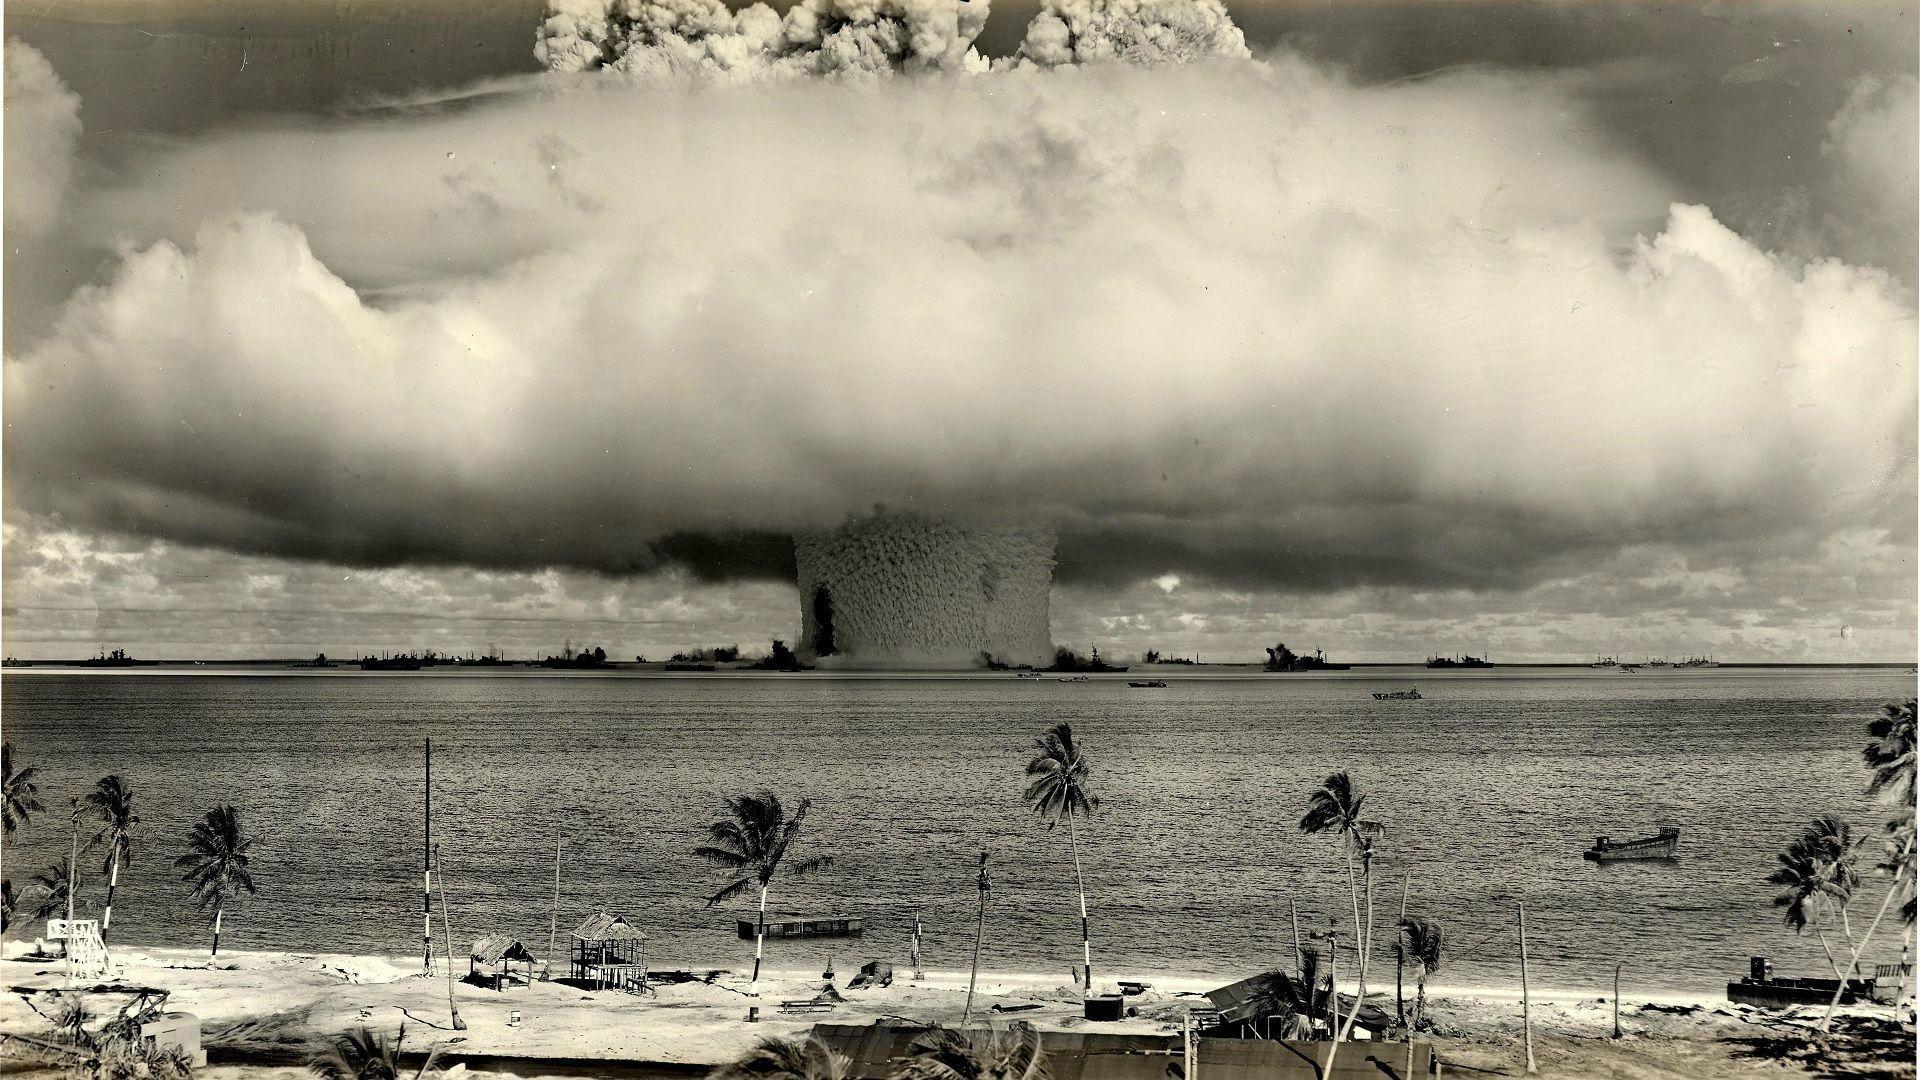 Nuclear Explosion Wallpaper 61 Images